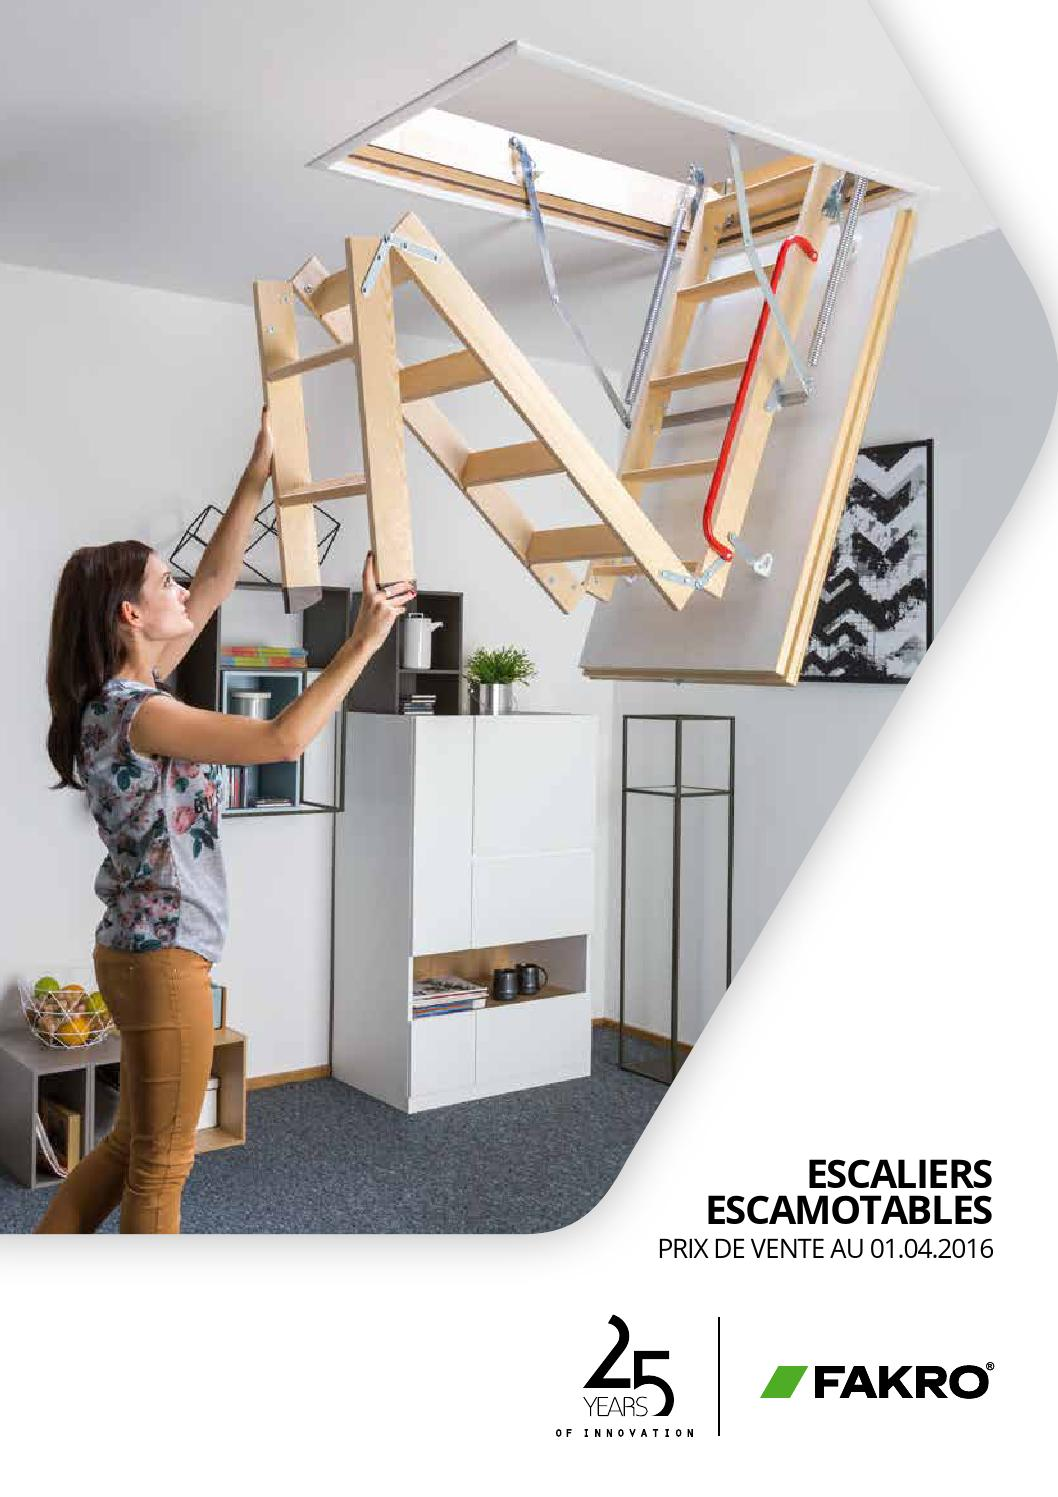 c531 fakro escaliers escamotables 01 04 2013 0 by fakro issuu. Black Bedroom Furniture Sets. Home Design Ideas